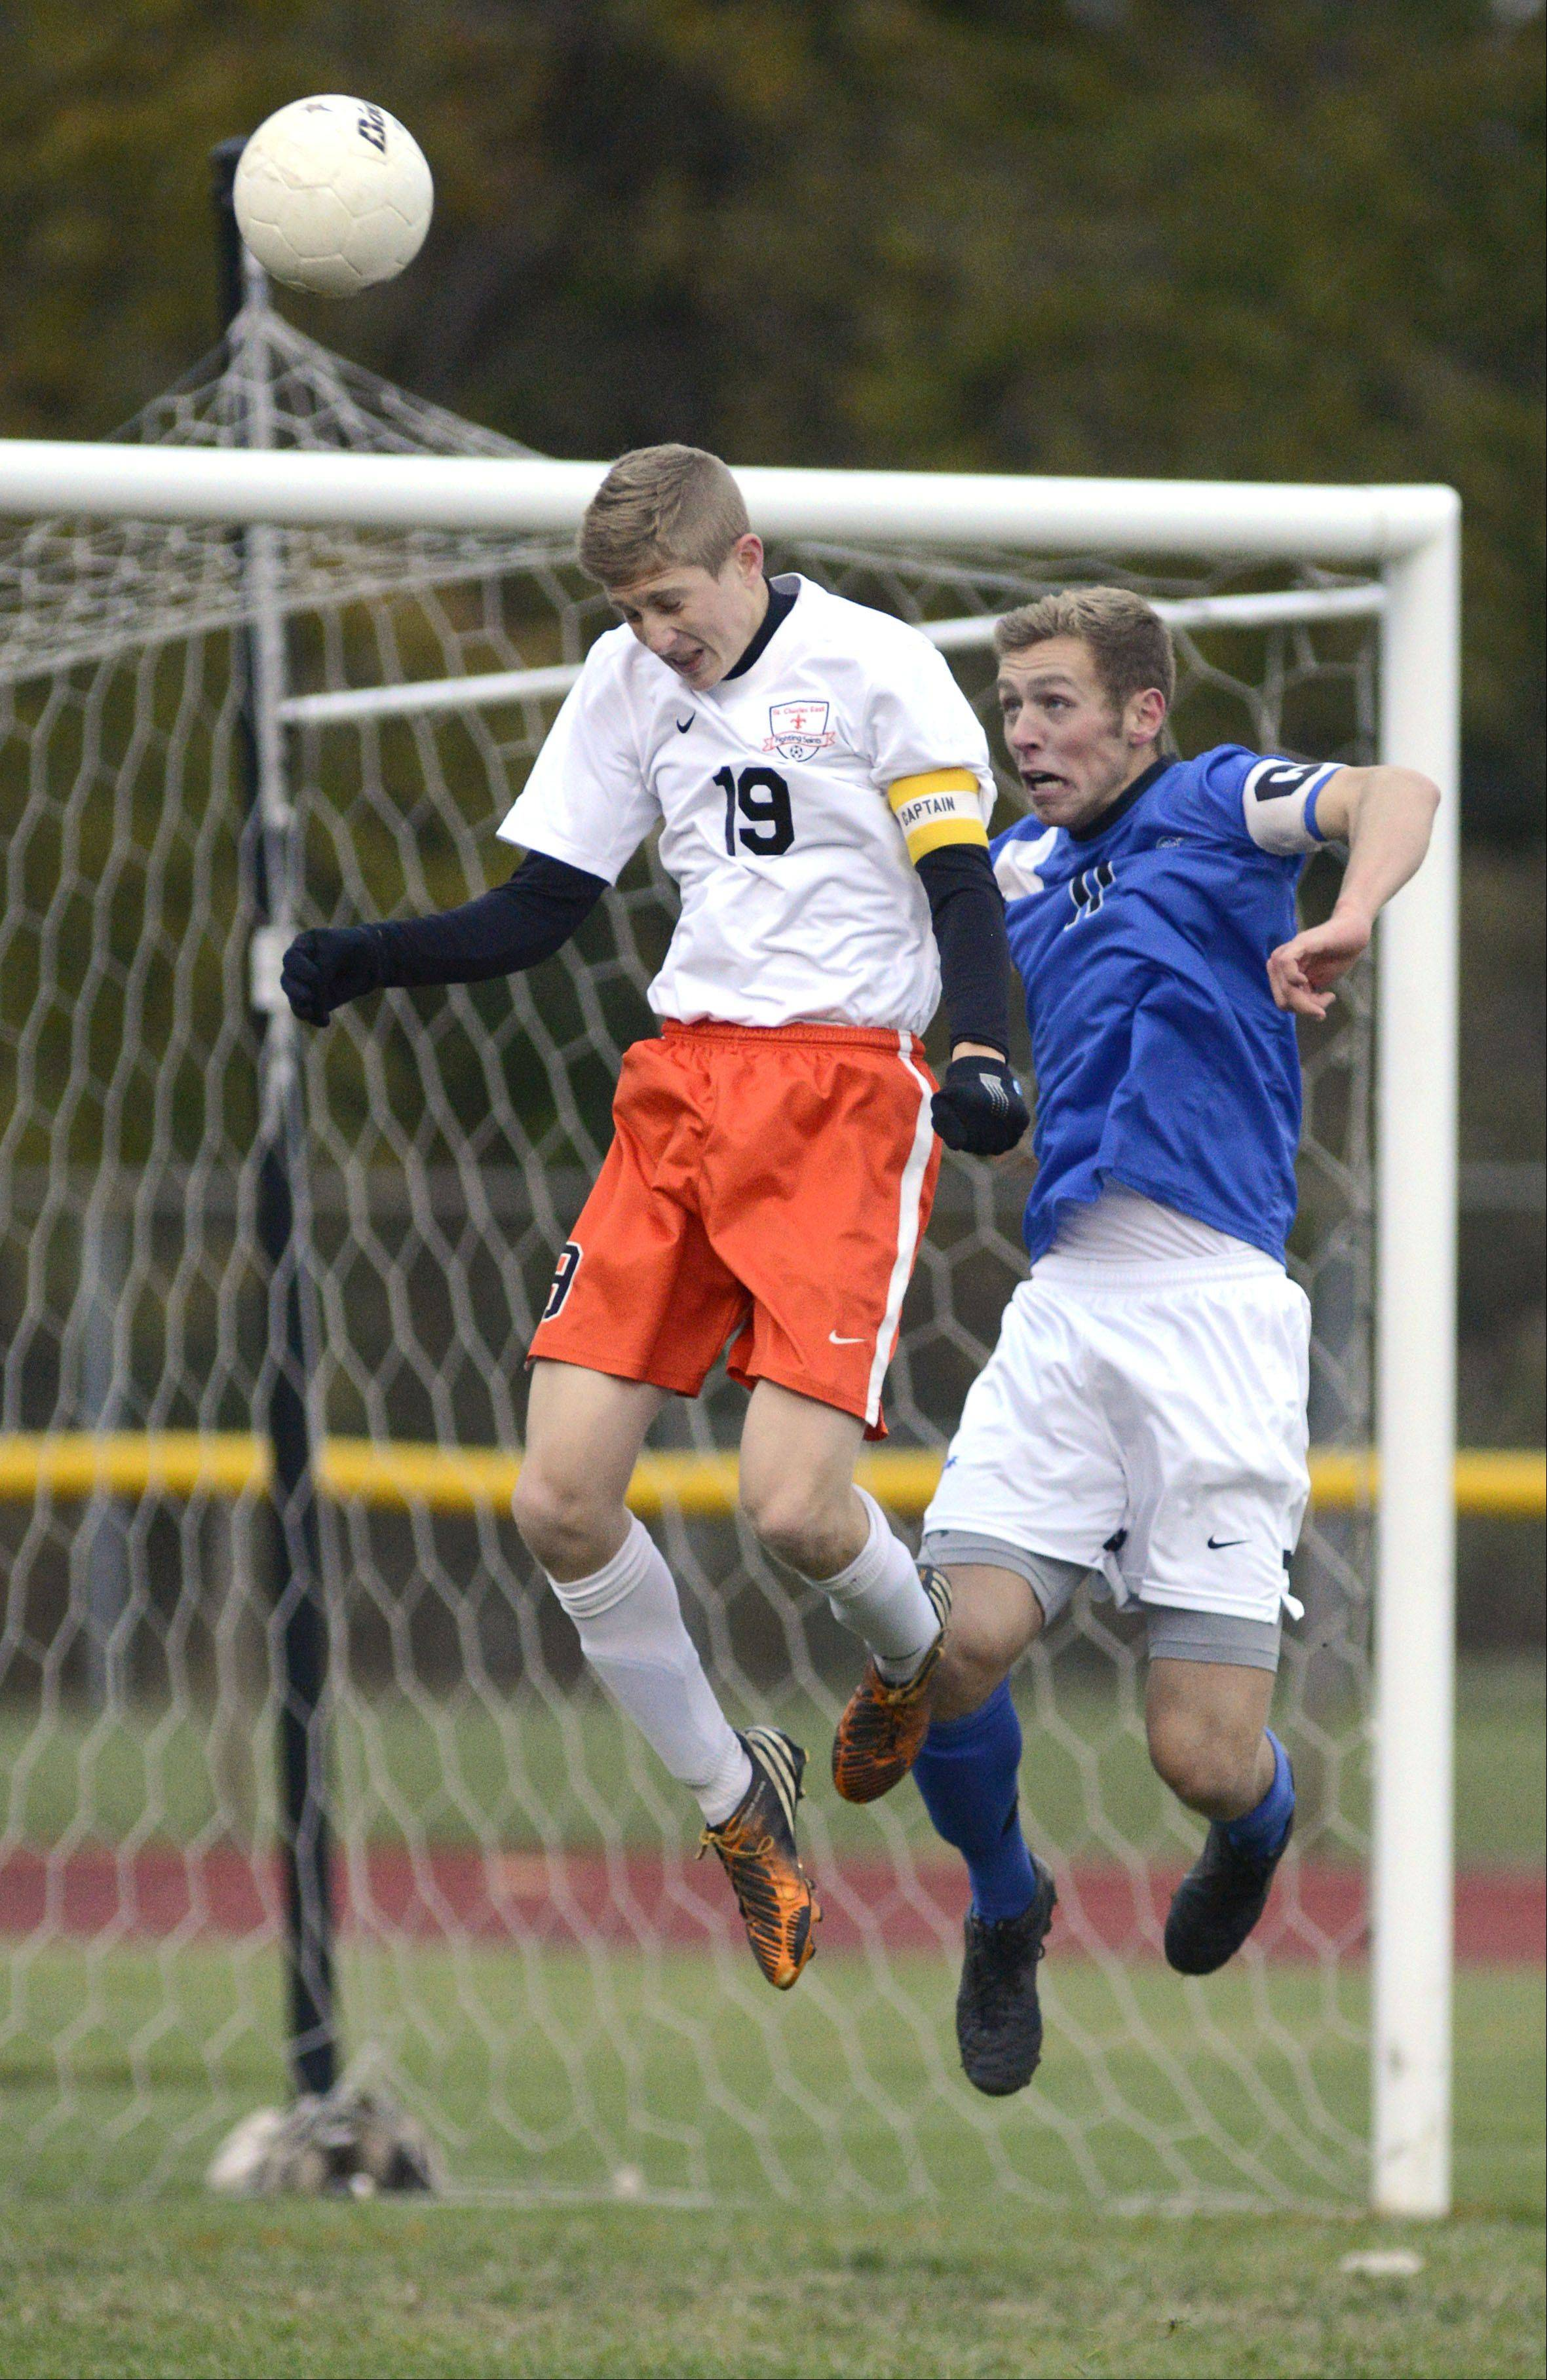 St. Charles East's Andrew Shone and St. Charles North's Phillip LeGare fight to head the ball in the second half on Wednesday, October 23.